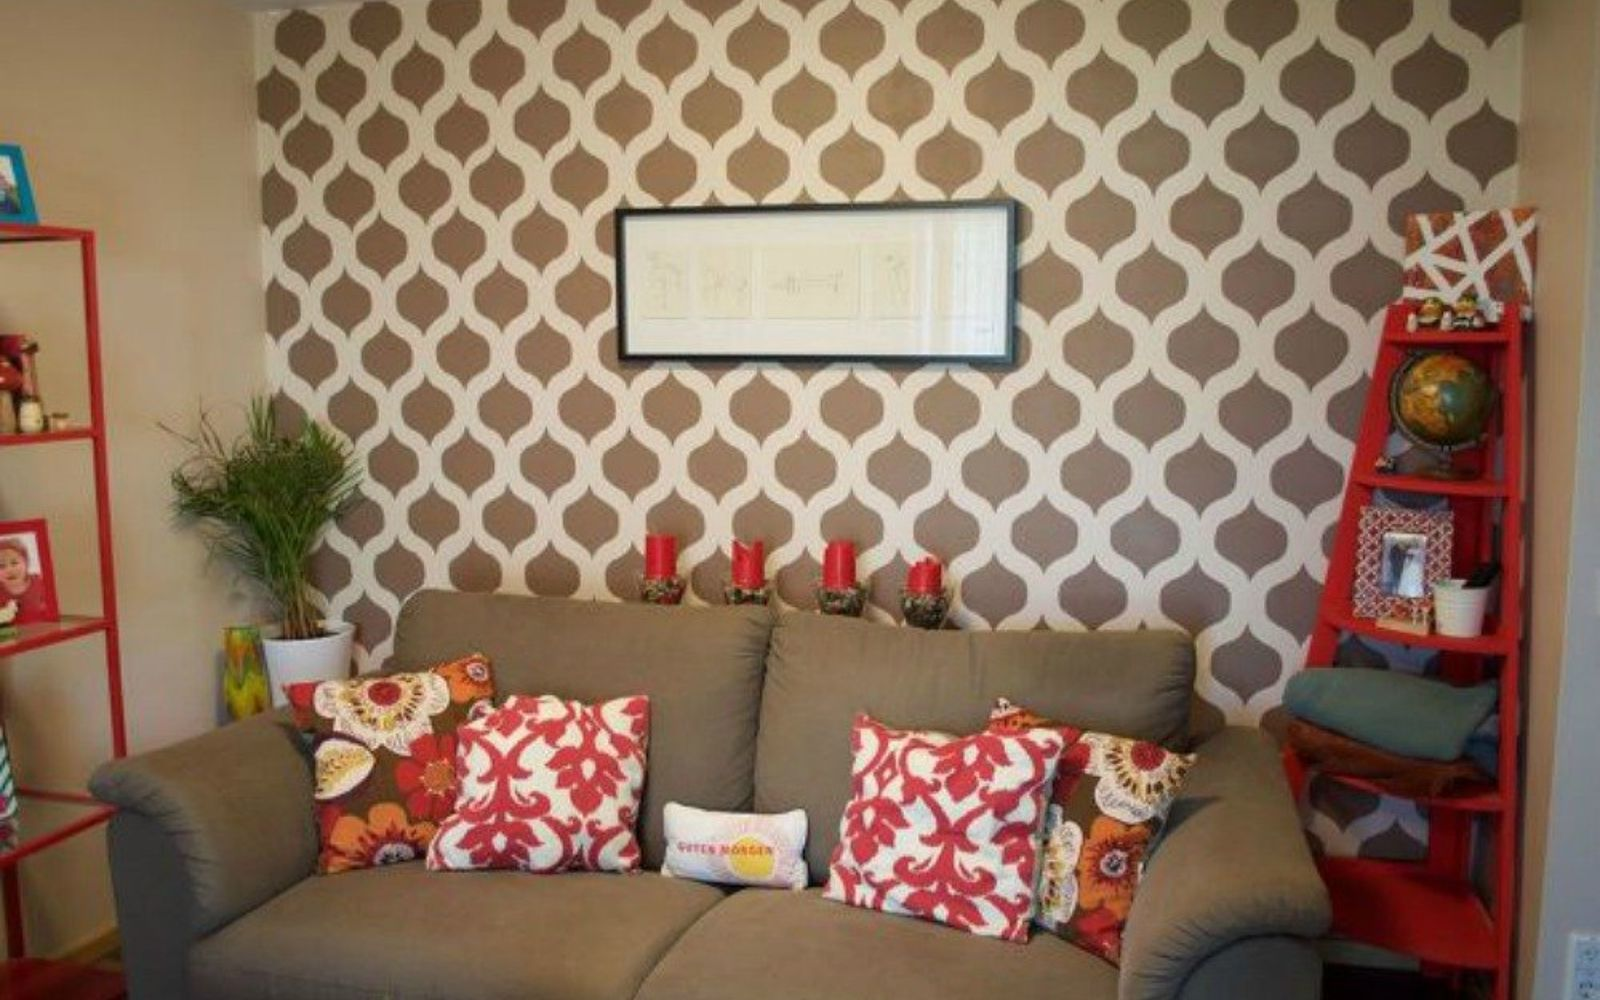 s 13 low budget ways to decorate your living room walls, go green, plumbing, Paint a simple and stylish stencil